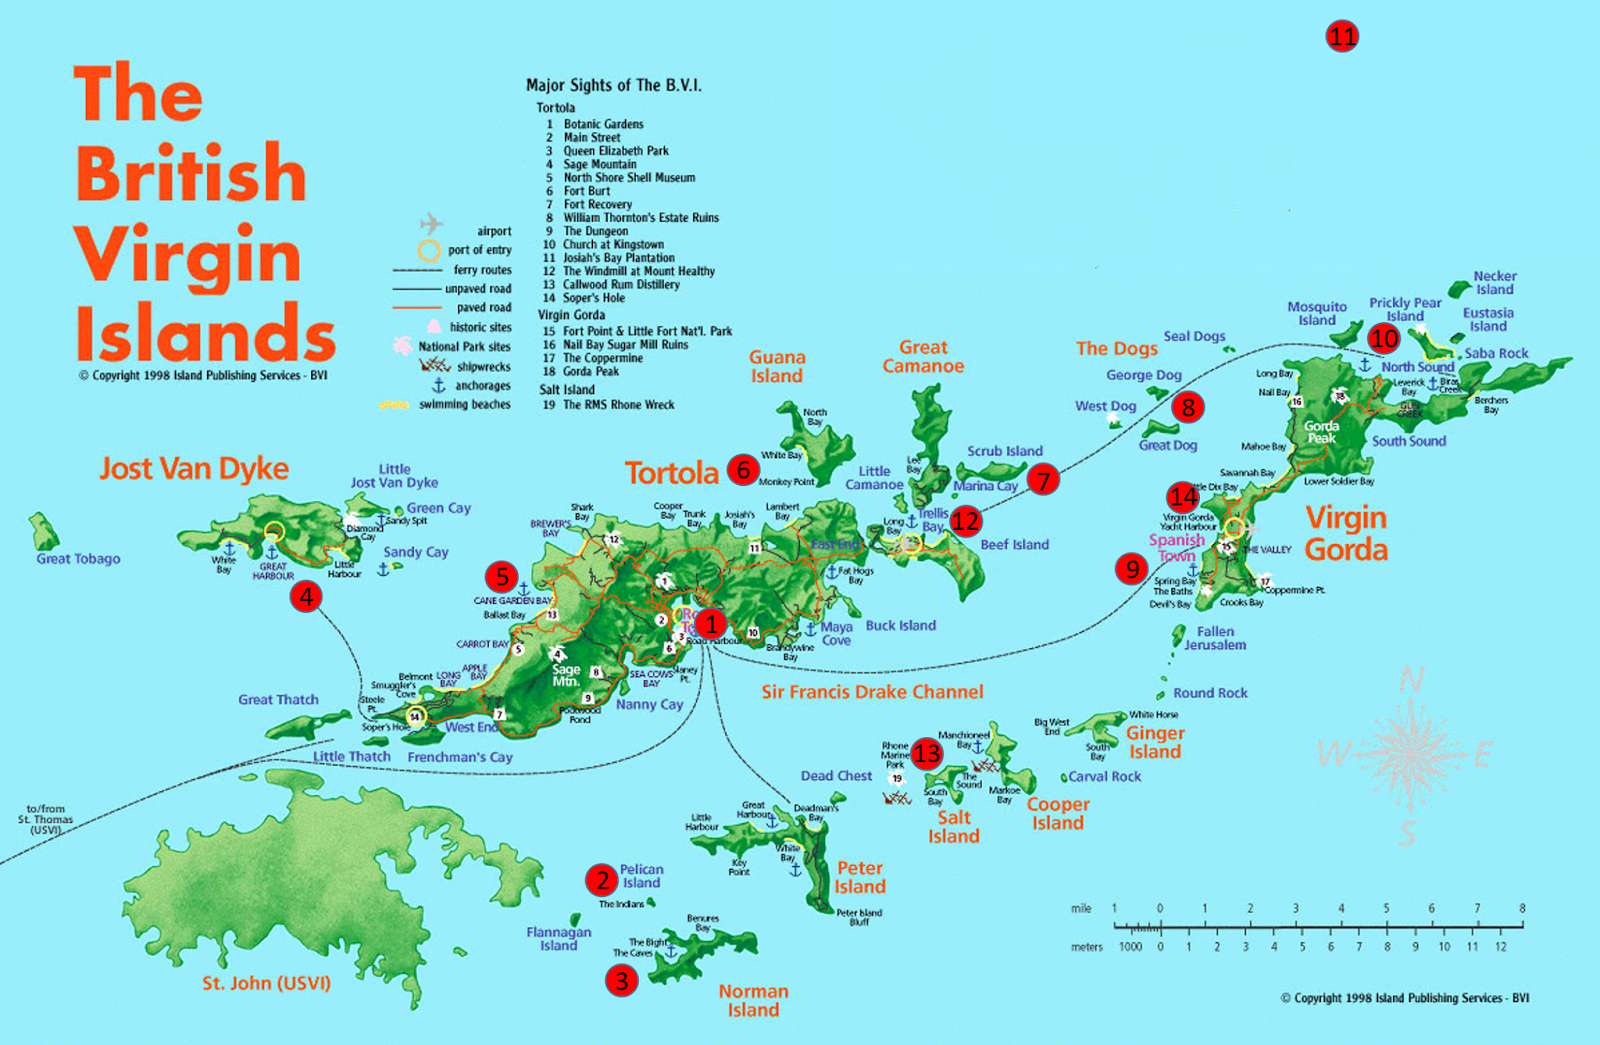 not pictured on this map is the island of anegada which is north of virgin gorda